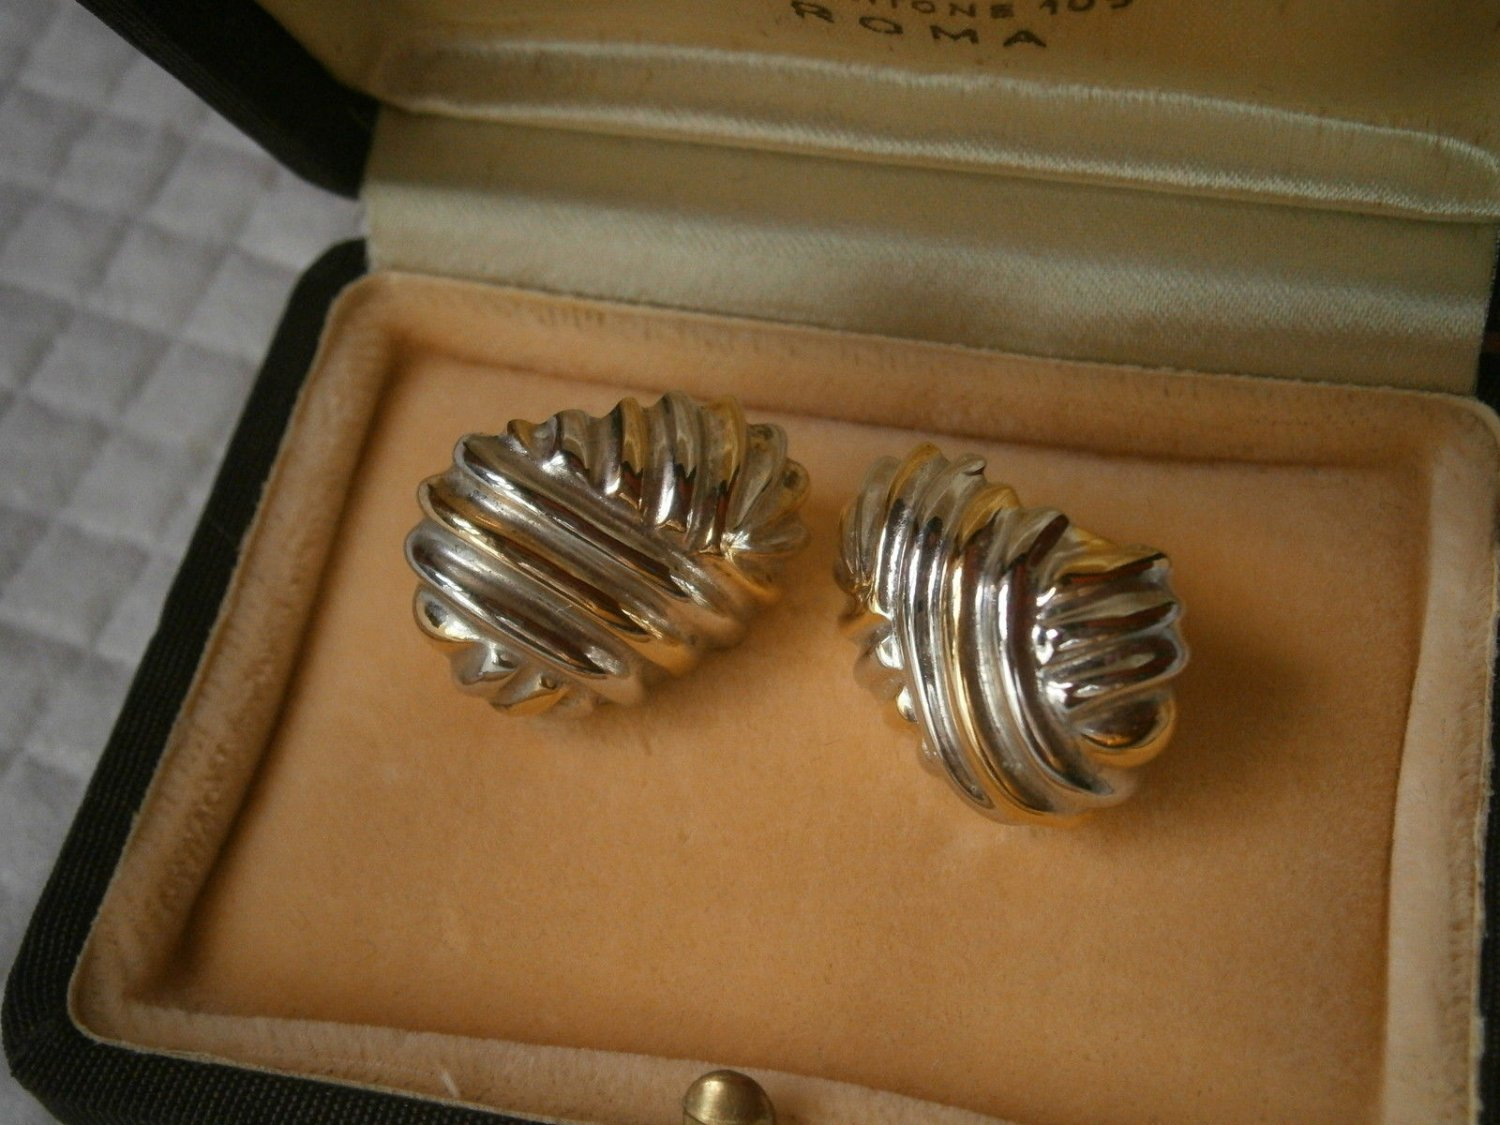 KNOT EARRINGS in STERLING silver 925 and gold plated Original in gift box